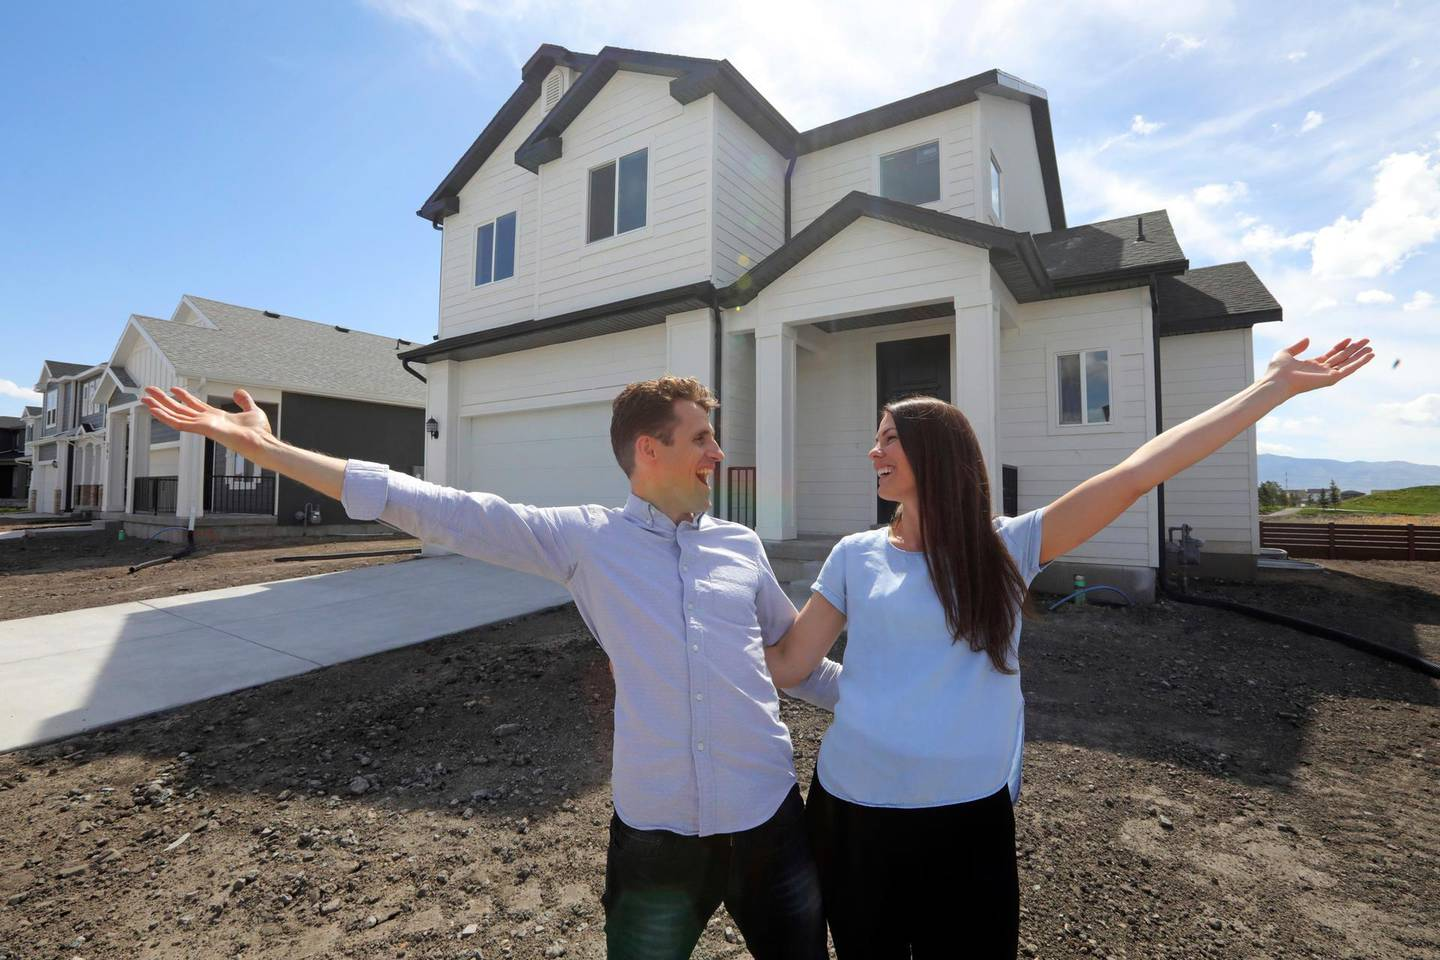 In this April 27, 2019, photo, Andy and Stacie Proctor stand in front of their new home in Vineyard, Utah. For some millennials looking to buy their first home, the hunt feels like a race against the clock. The Proctors ultimately made a successful offer on a three-bedroom house for $438,000 in Vineyard. (AP Photo/Rick Bowmer)